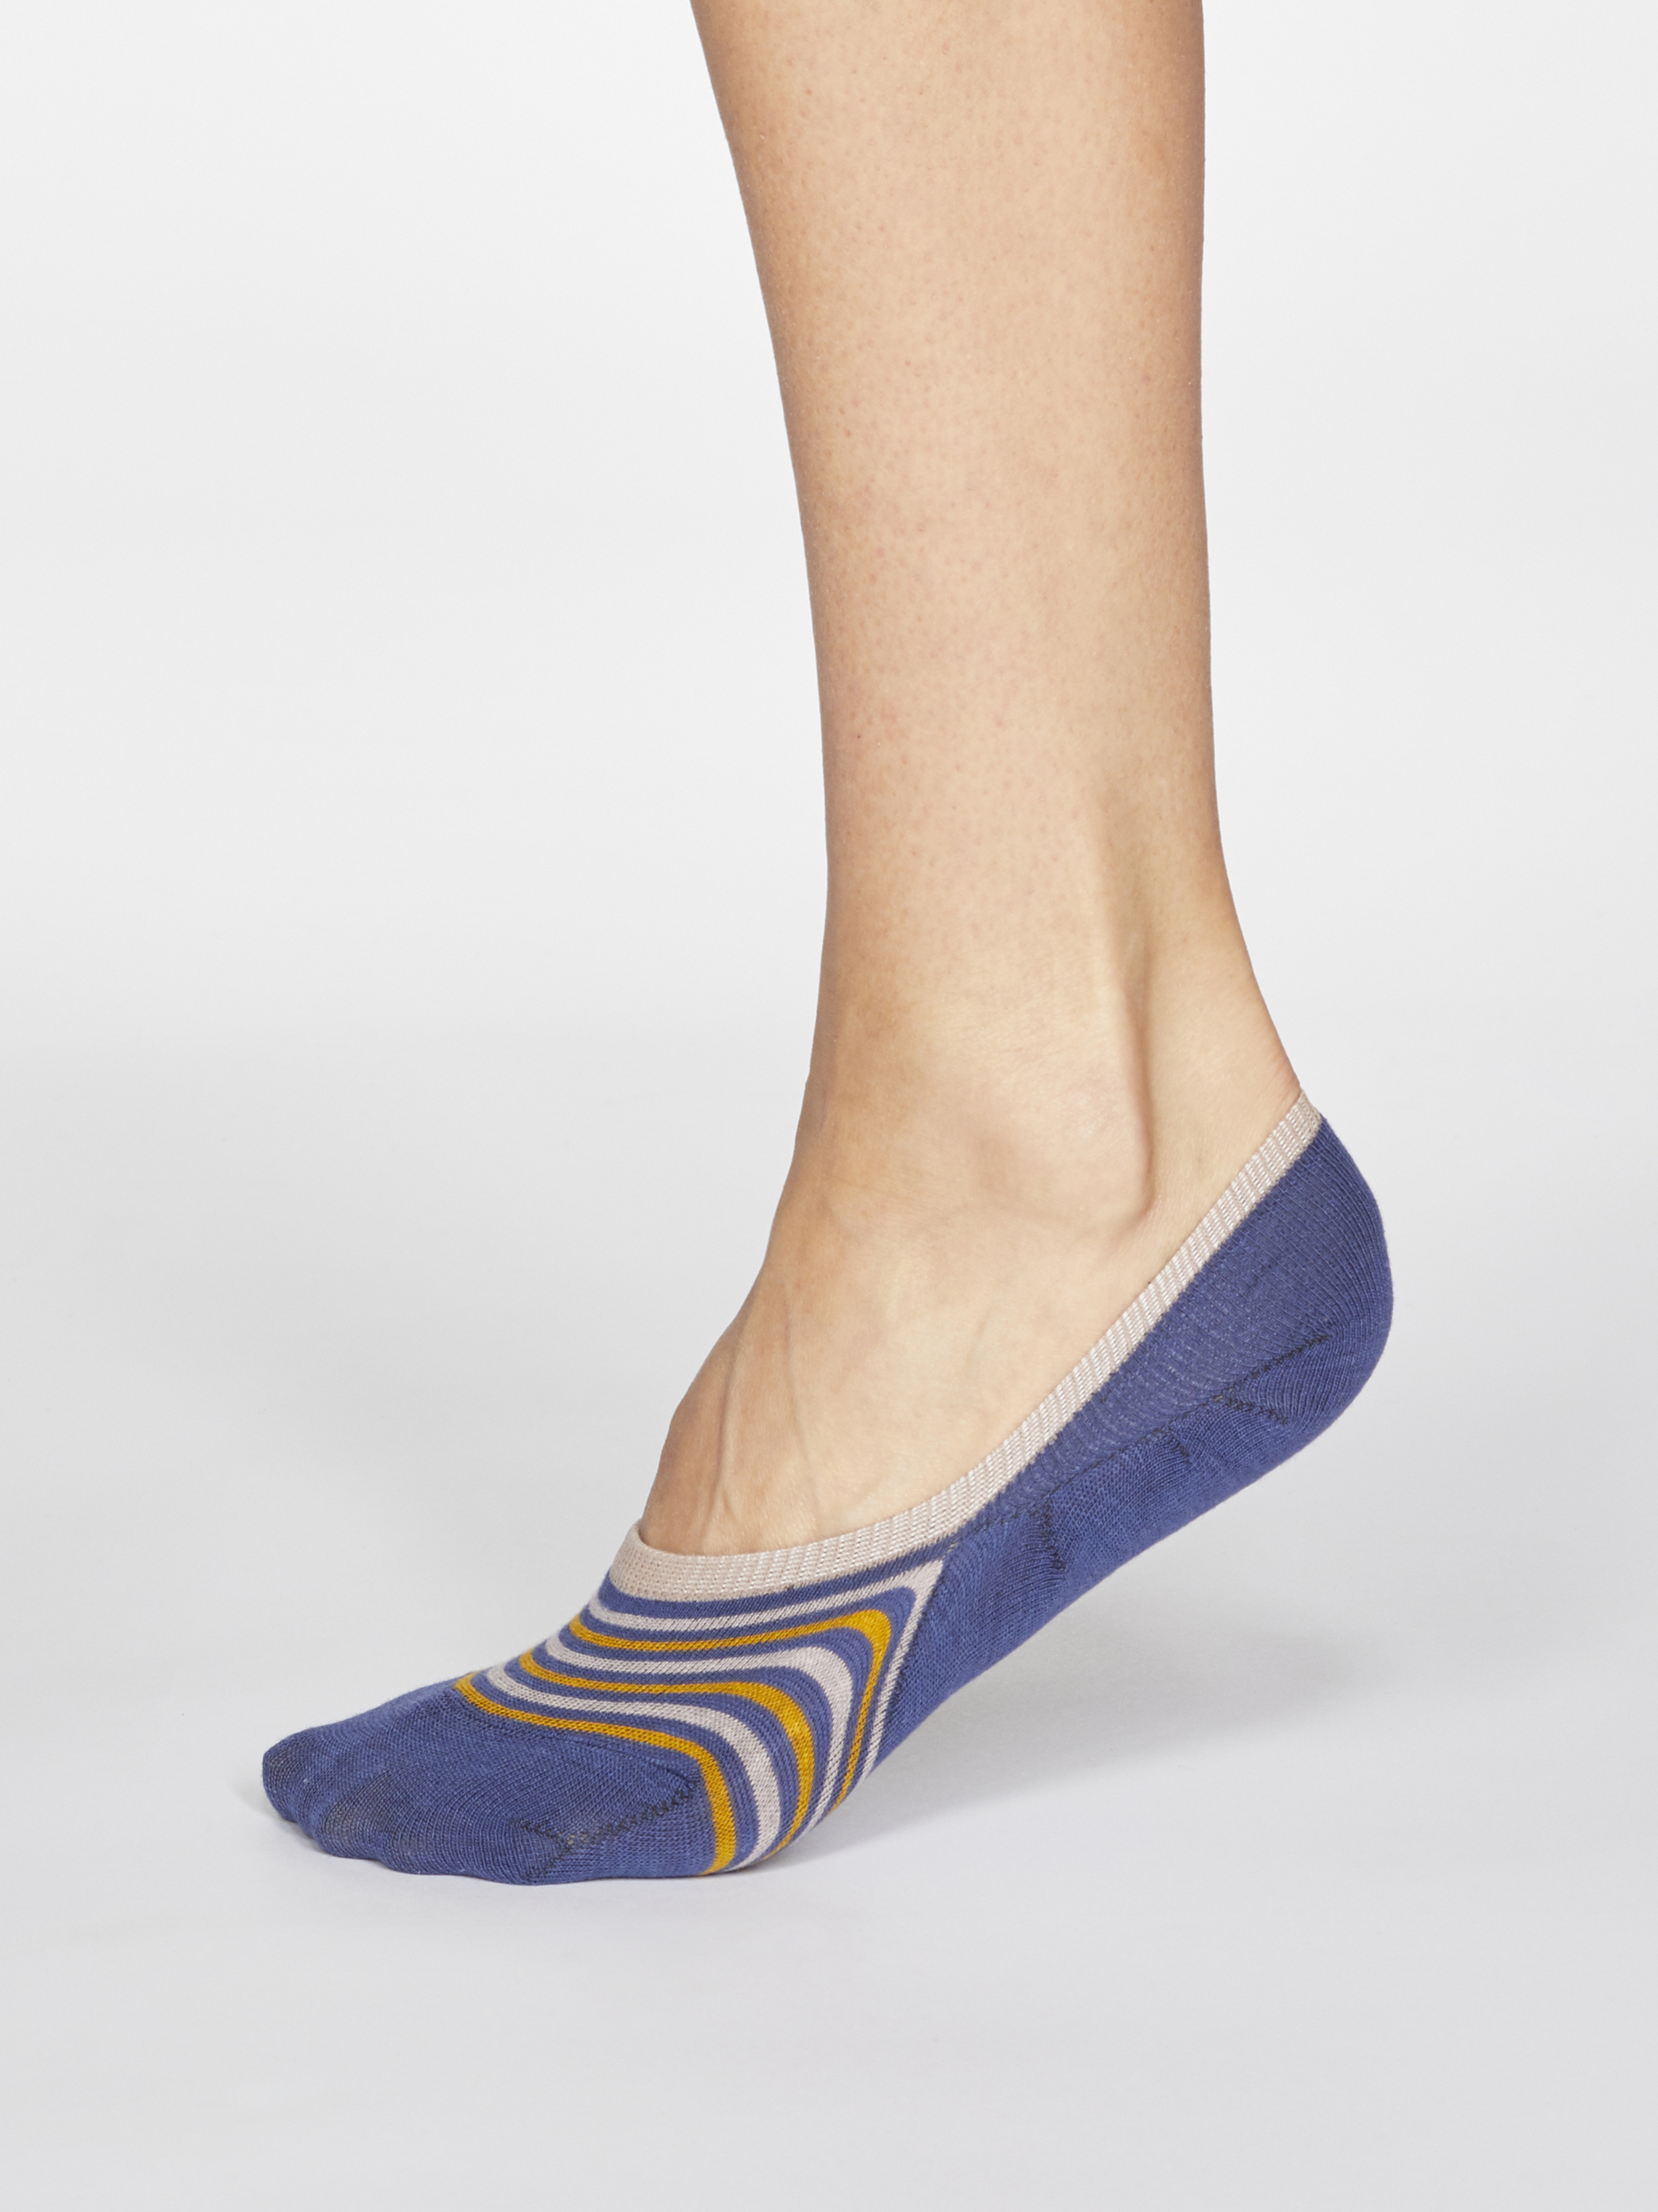 SPW644-MINERAL-BLUE--Kris-Striped-Bamboo-Organic-Cotton-Blend-No-Show-Socks-in-Mineral-Blue-1S